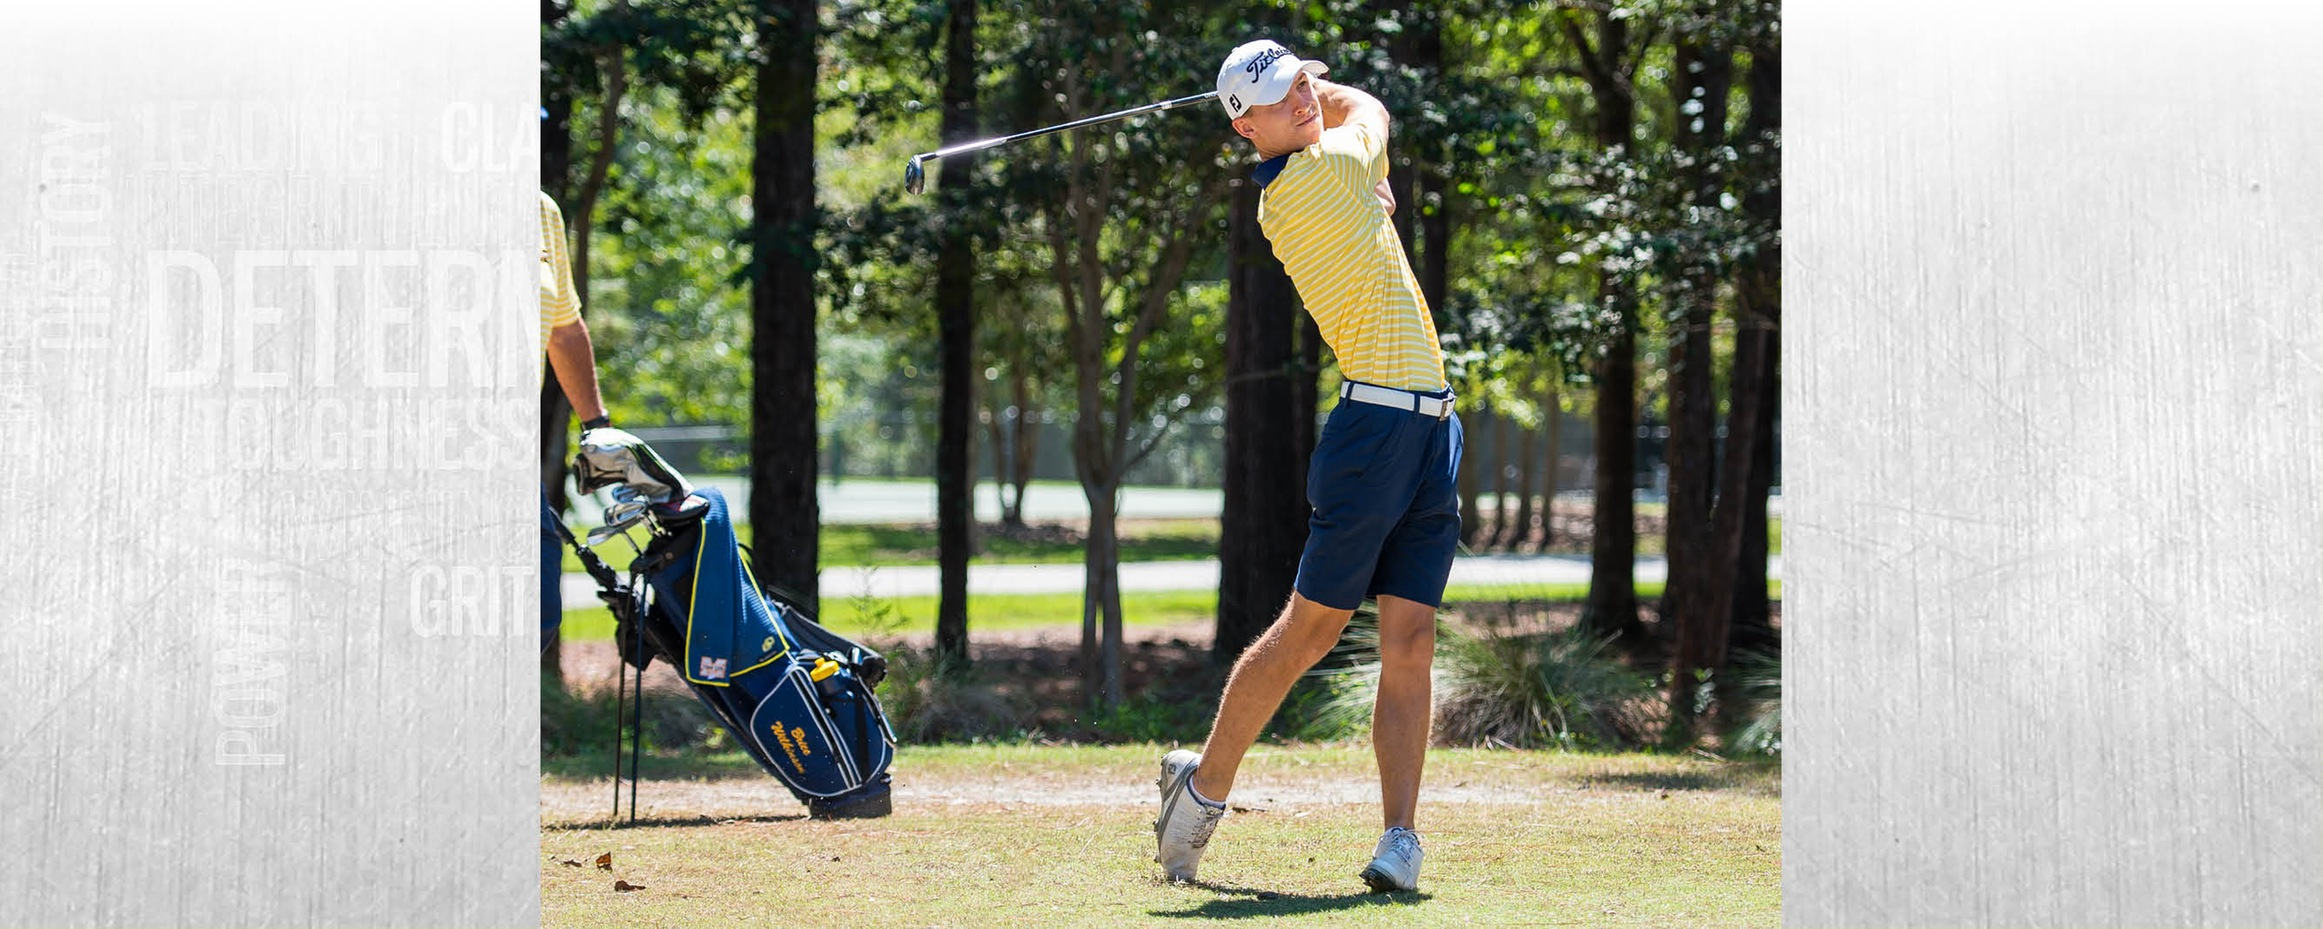 Wilkinson's 3-under leads at Carey Classic